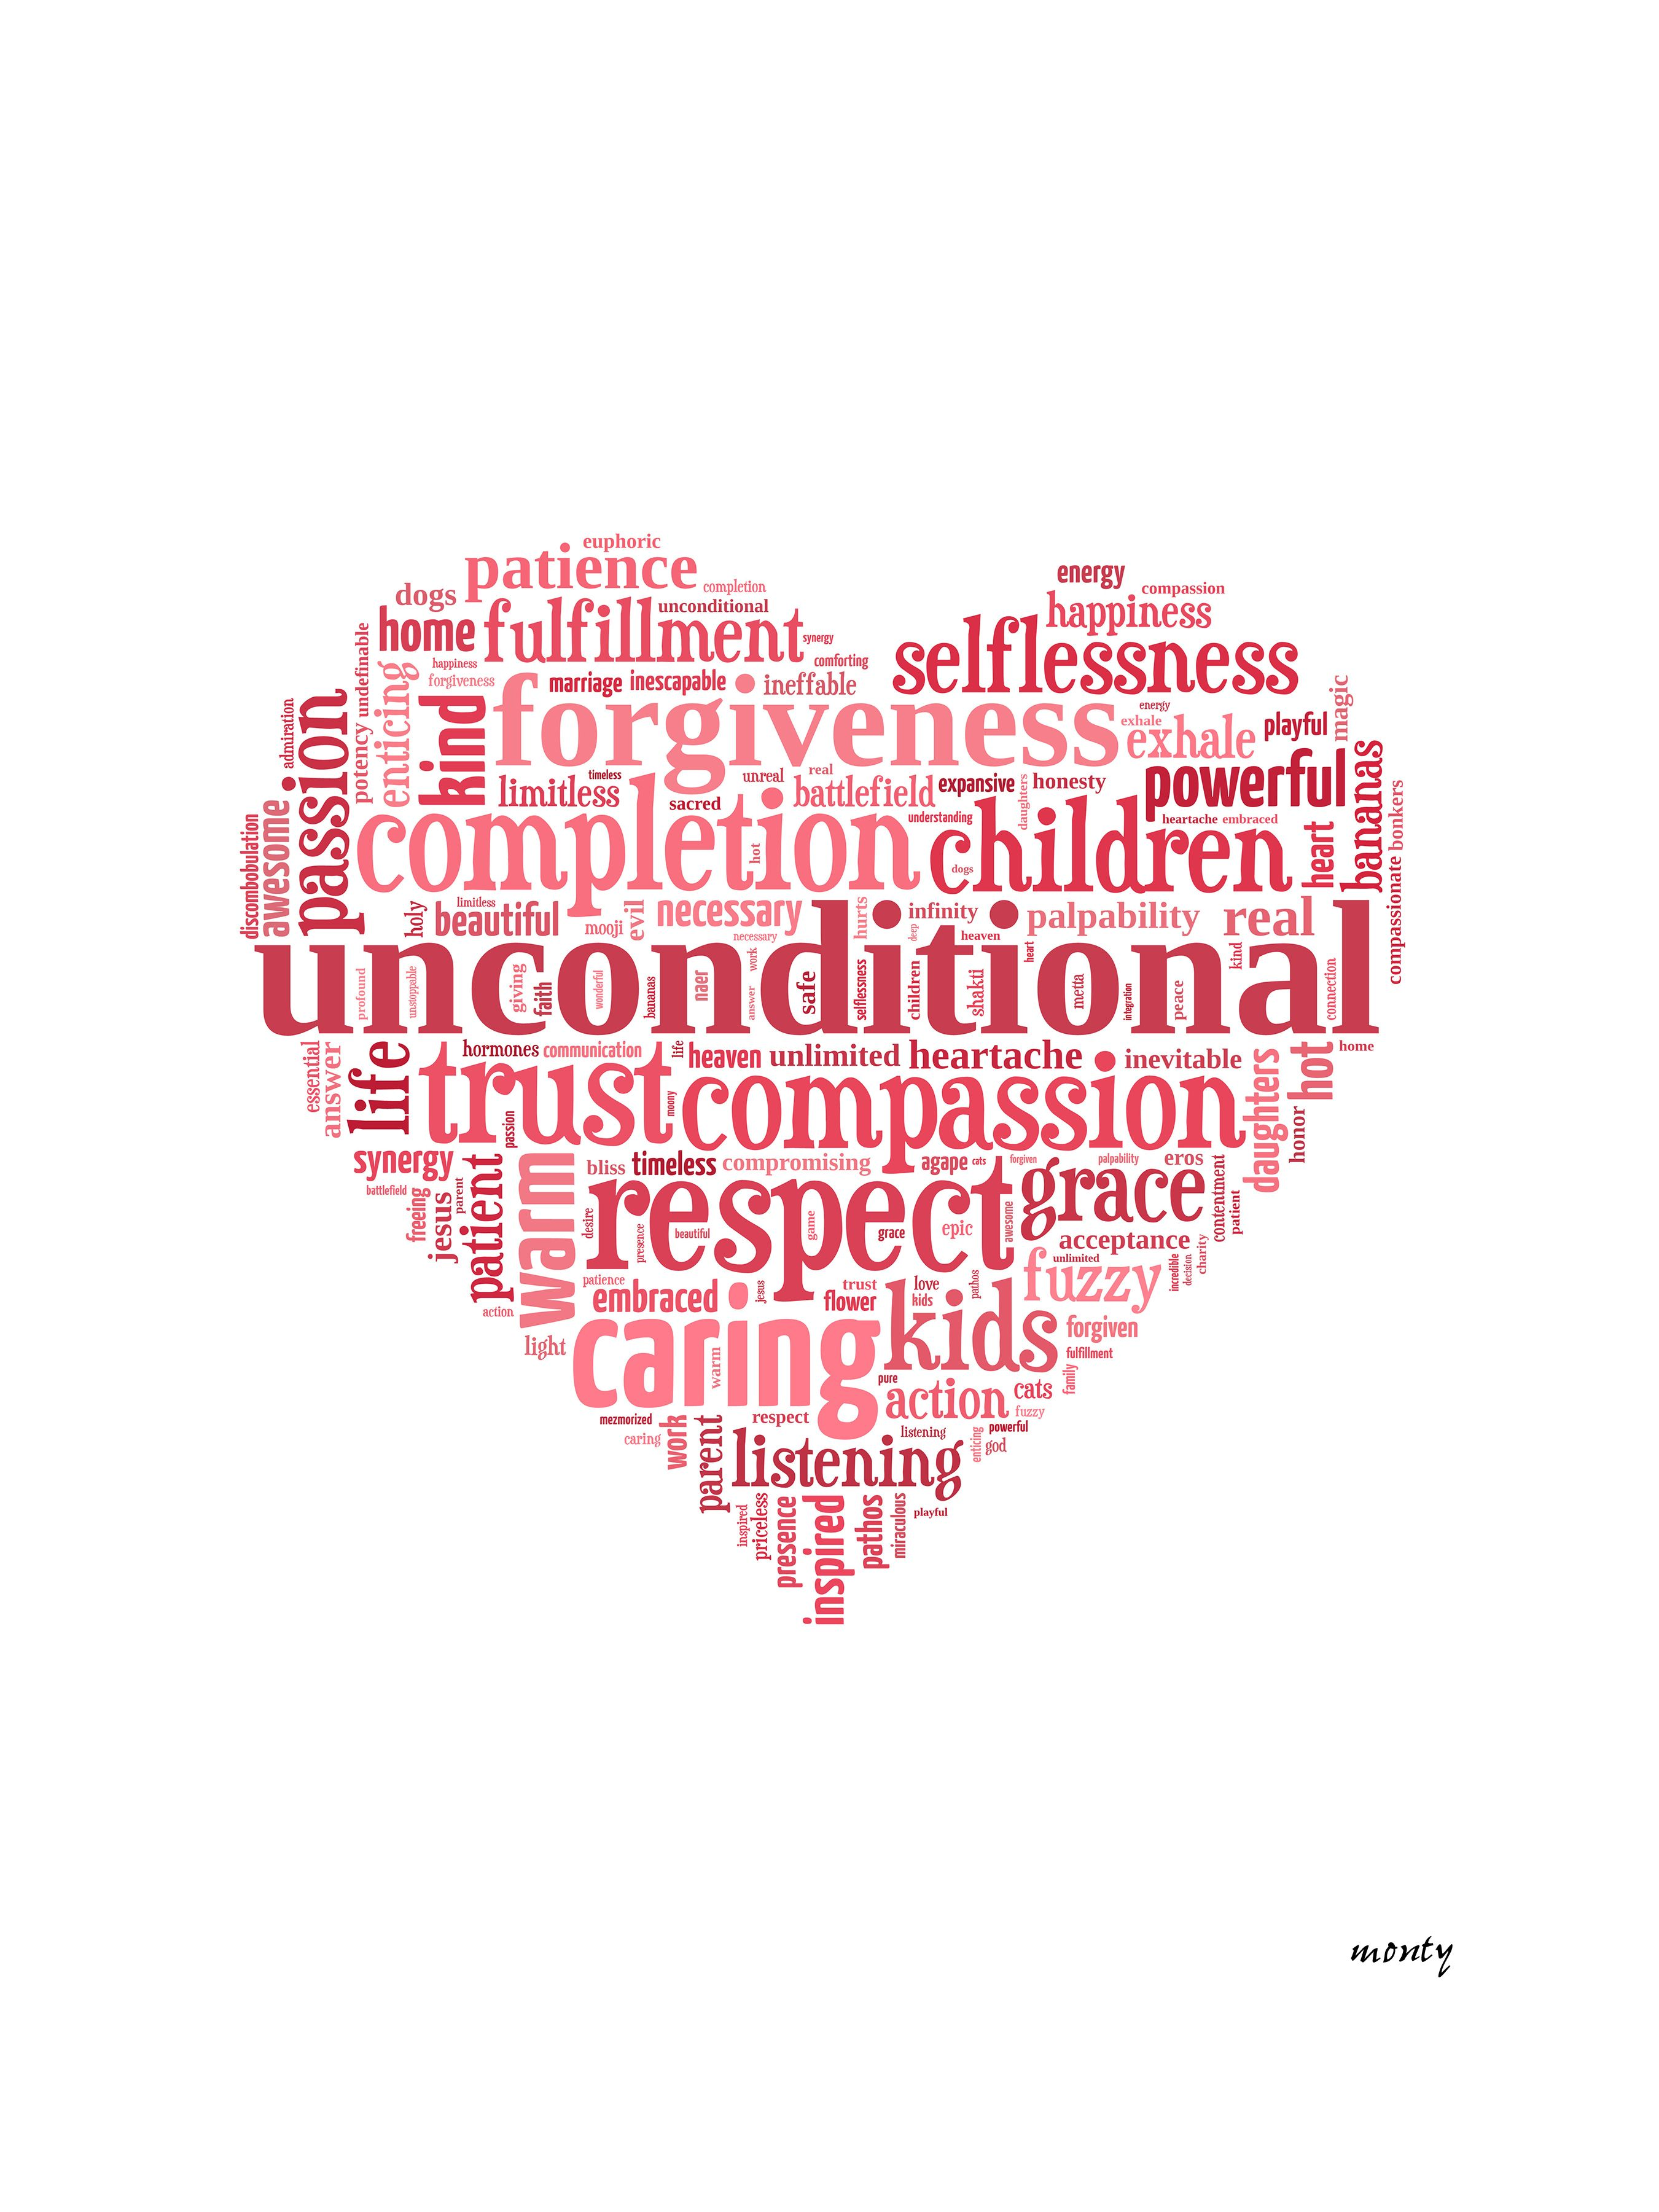 Describe Love in one word.. created from responses from